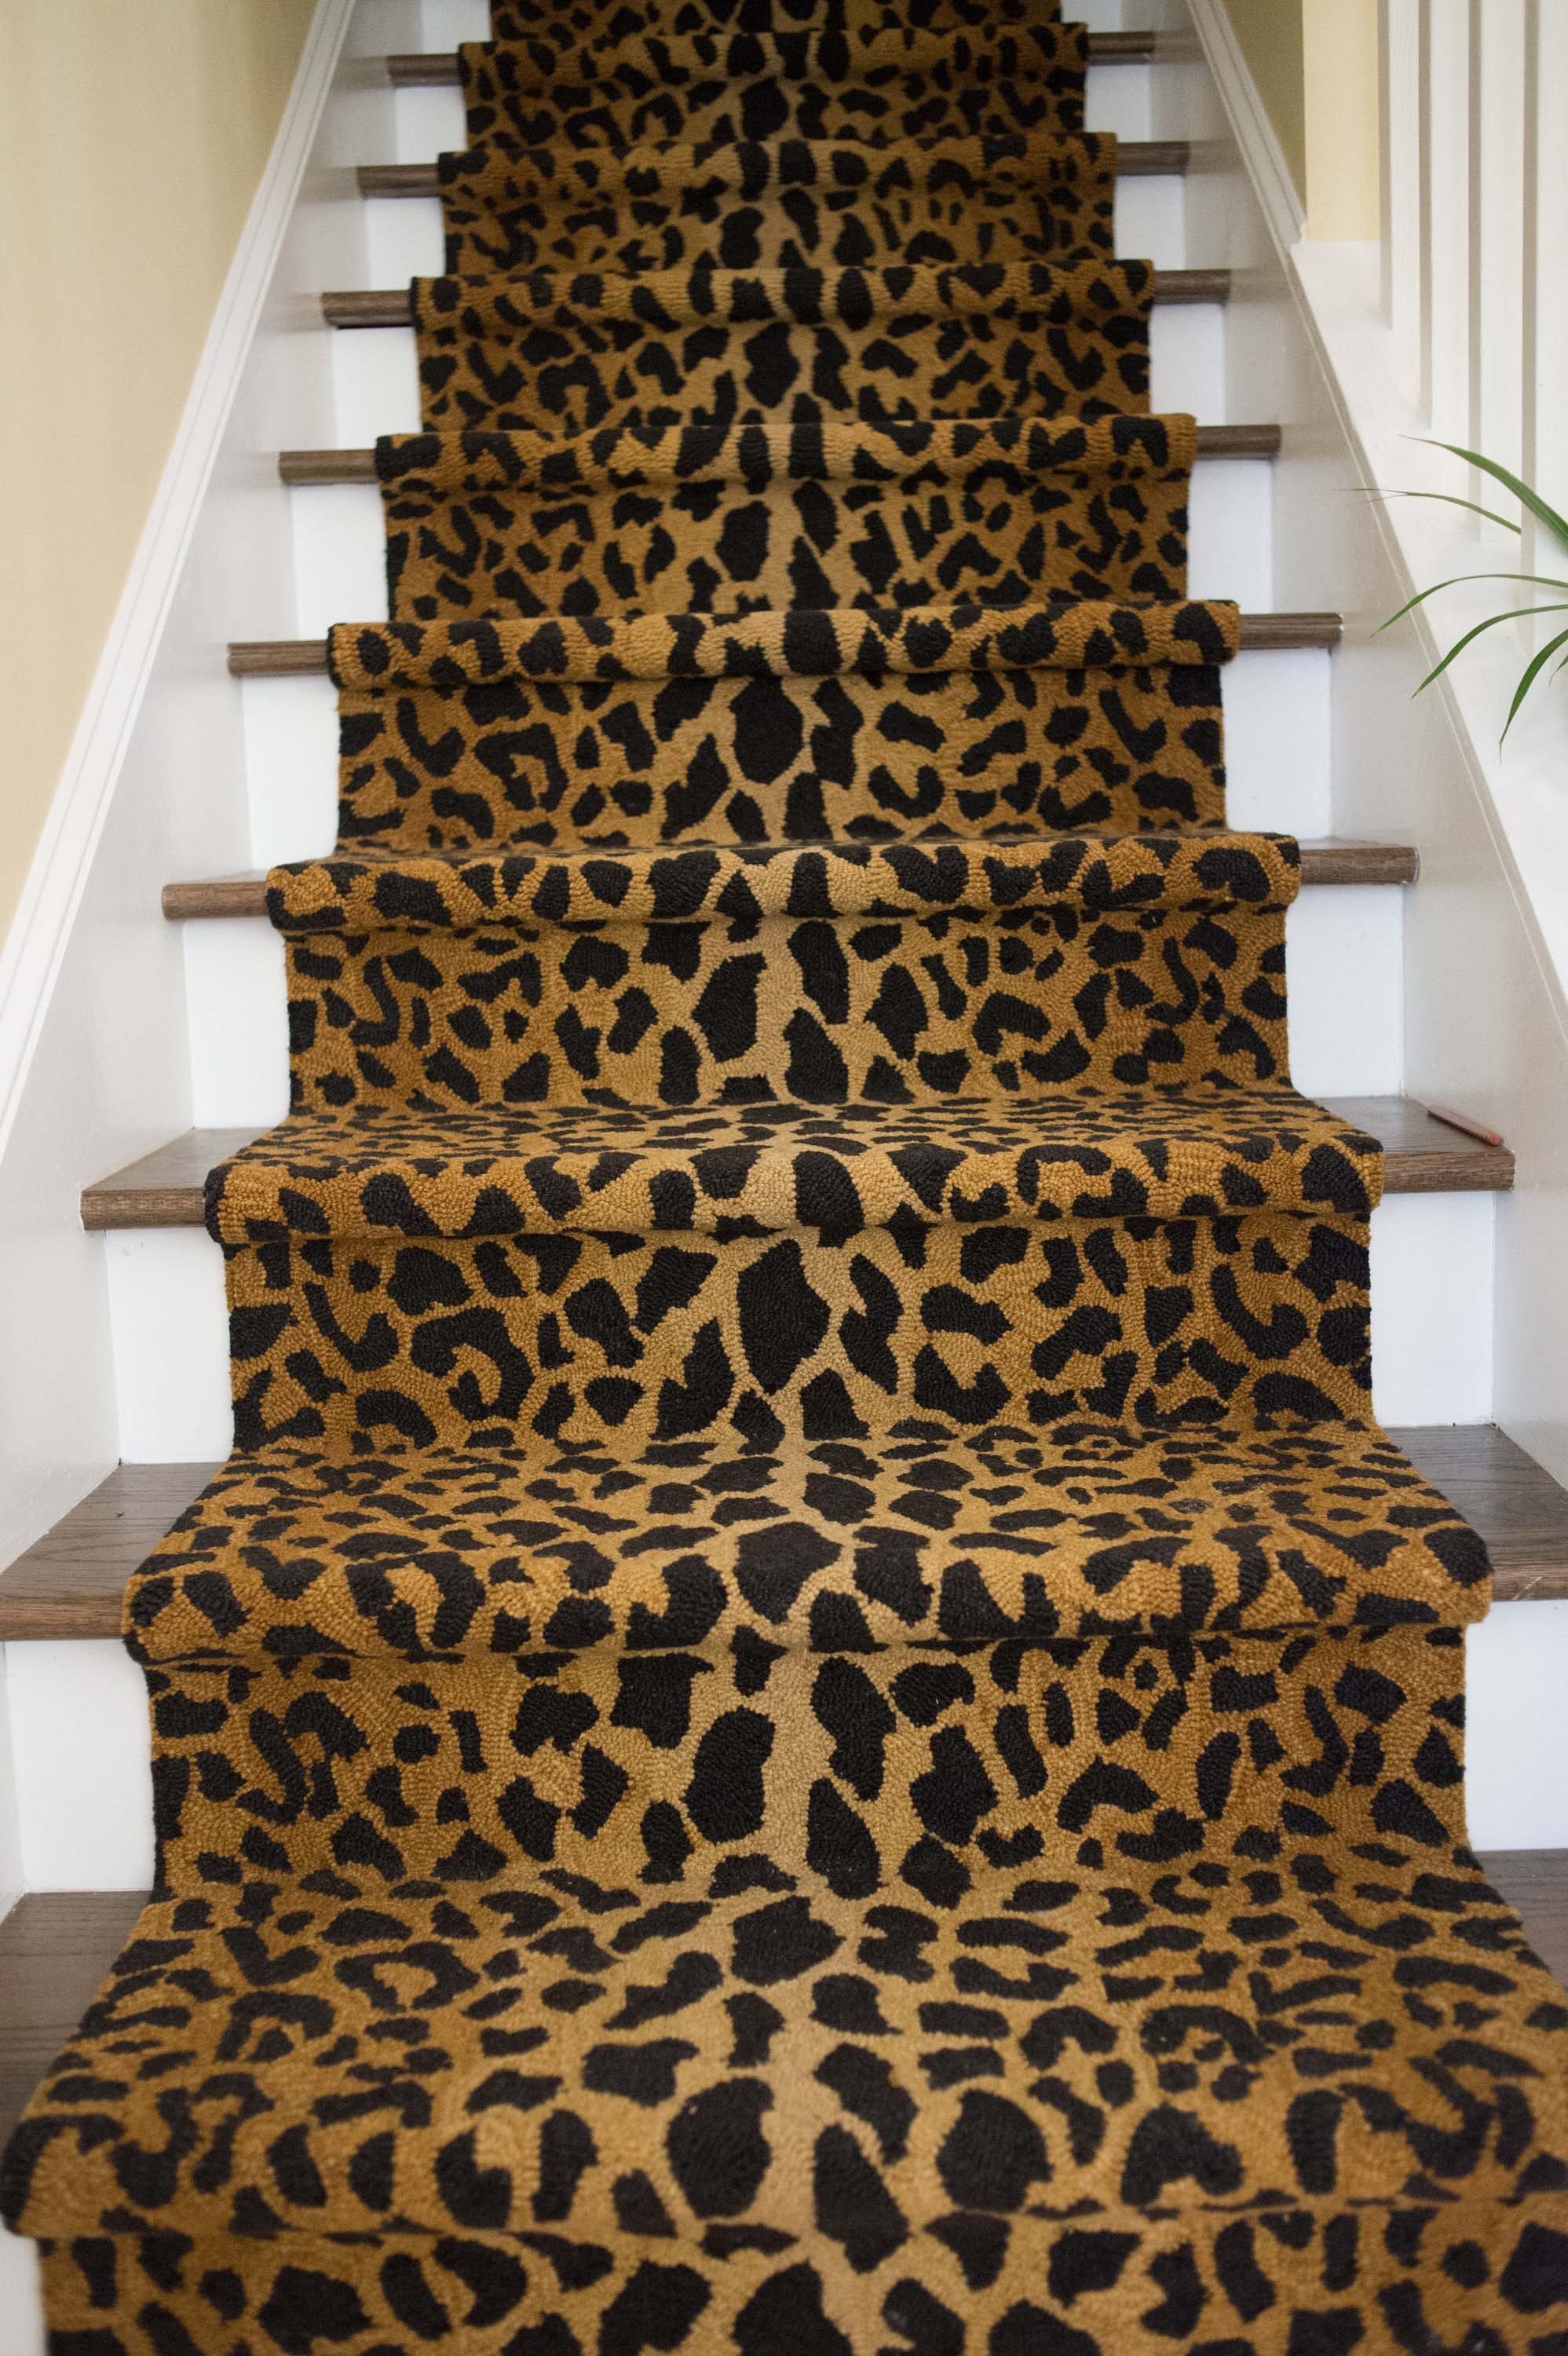 House interior staircase with leopard skin carpet